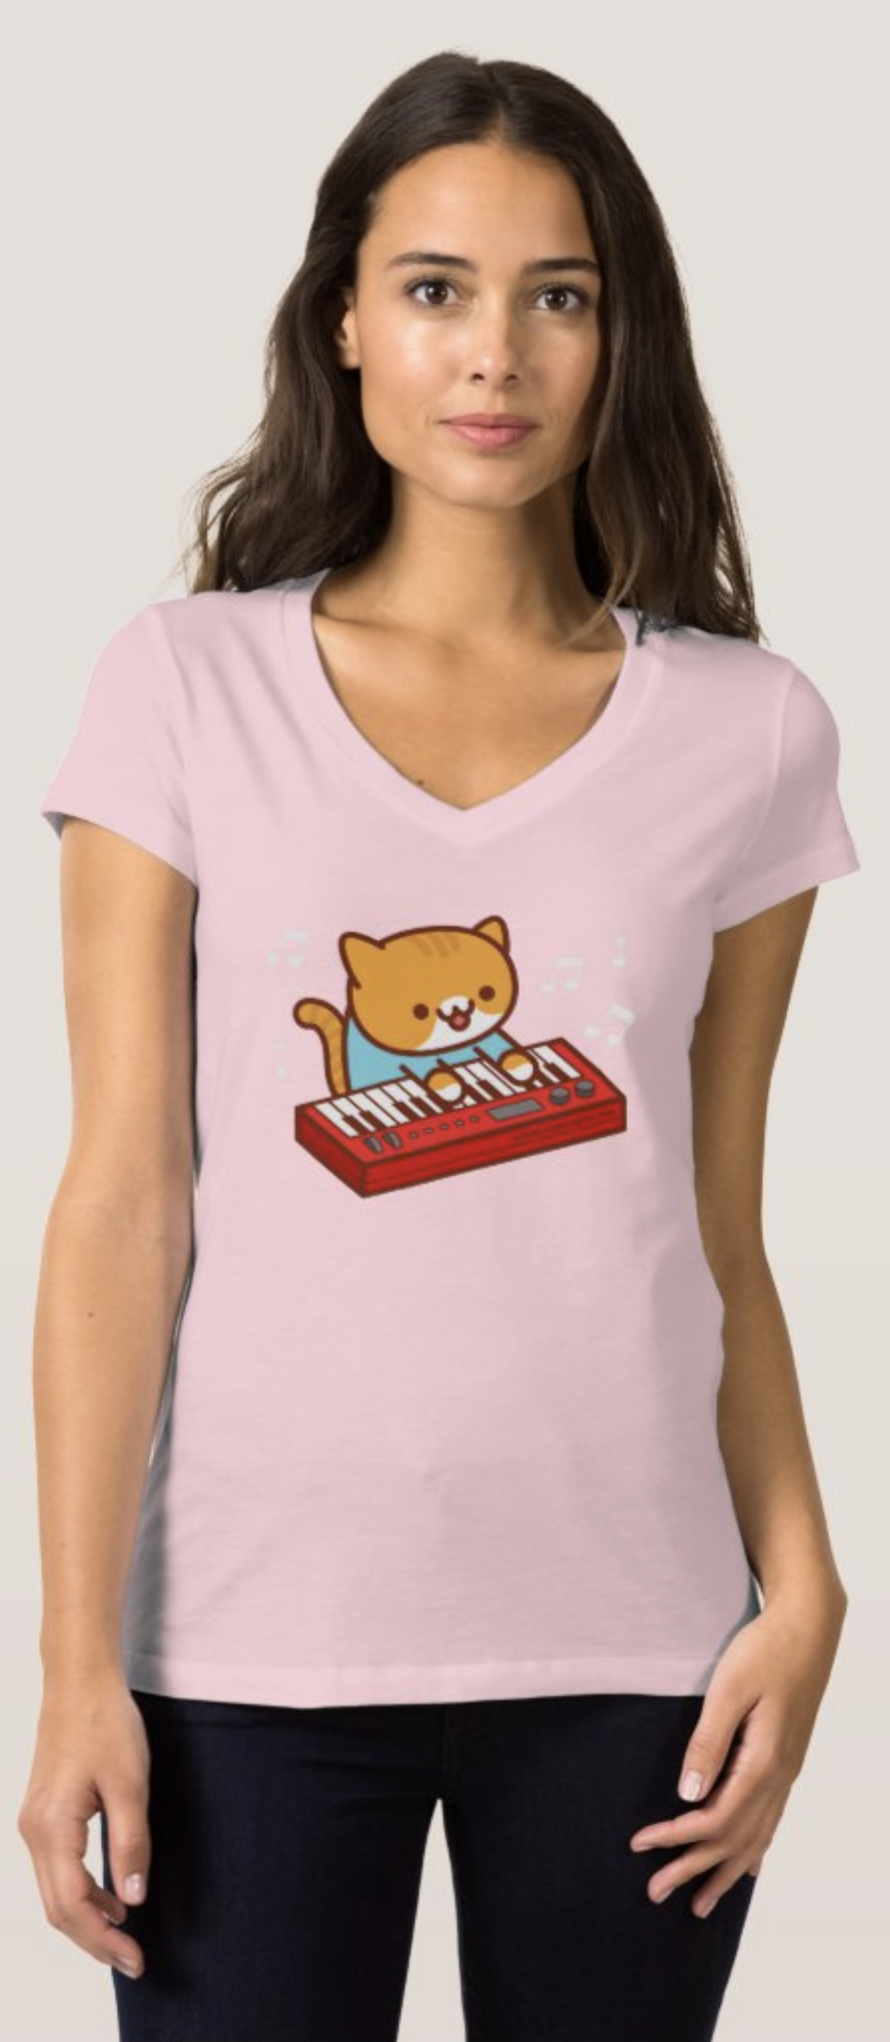 KEYBOARD CAT – Funny Cat V-neck T-shirt – Only $21.95 on Amazon